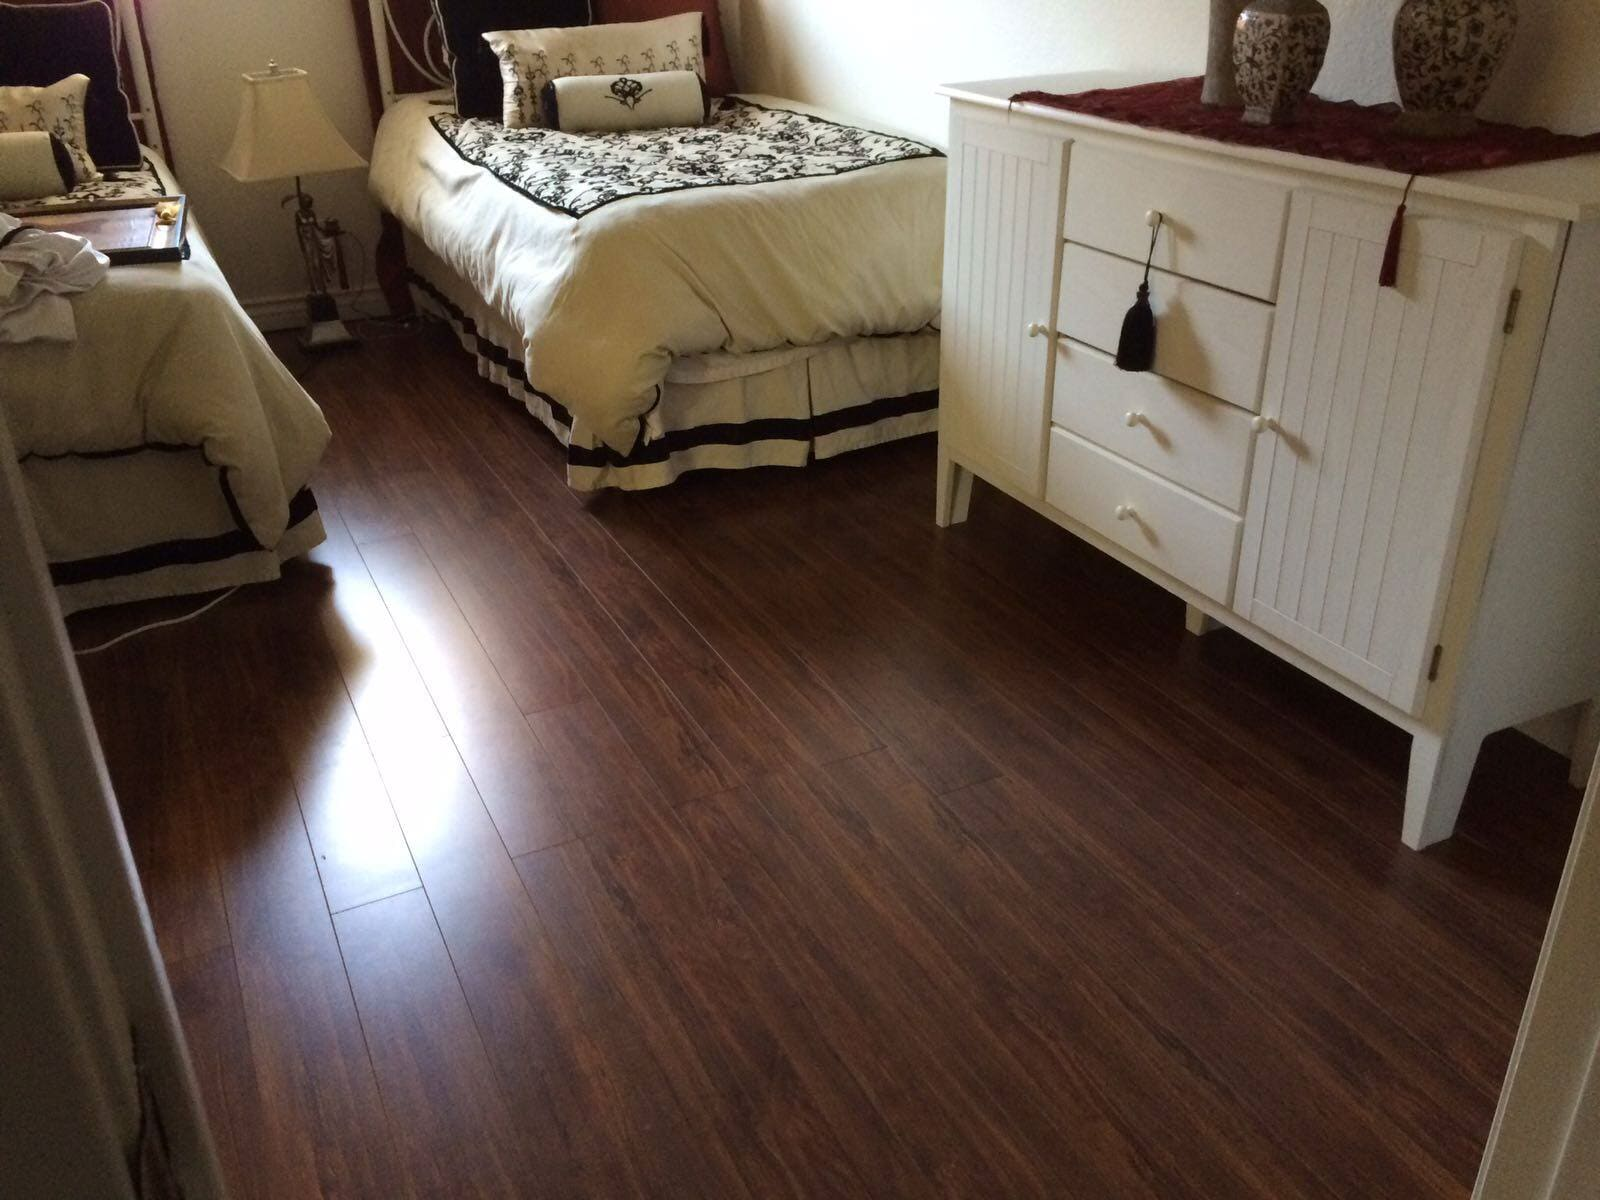 Dark hardwood bedroom floors from Century Flooring & Decor in Corona, CA